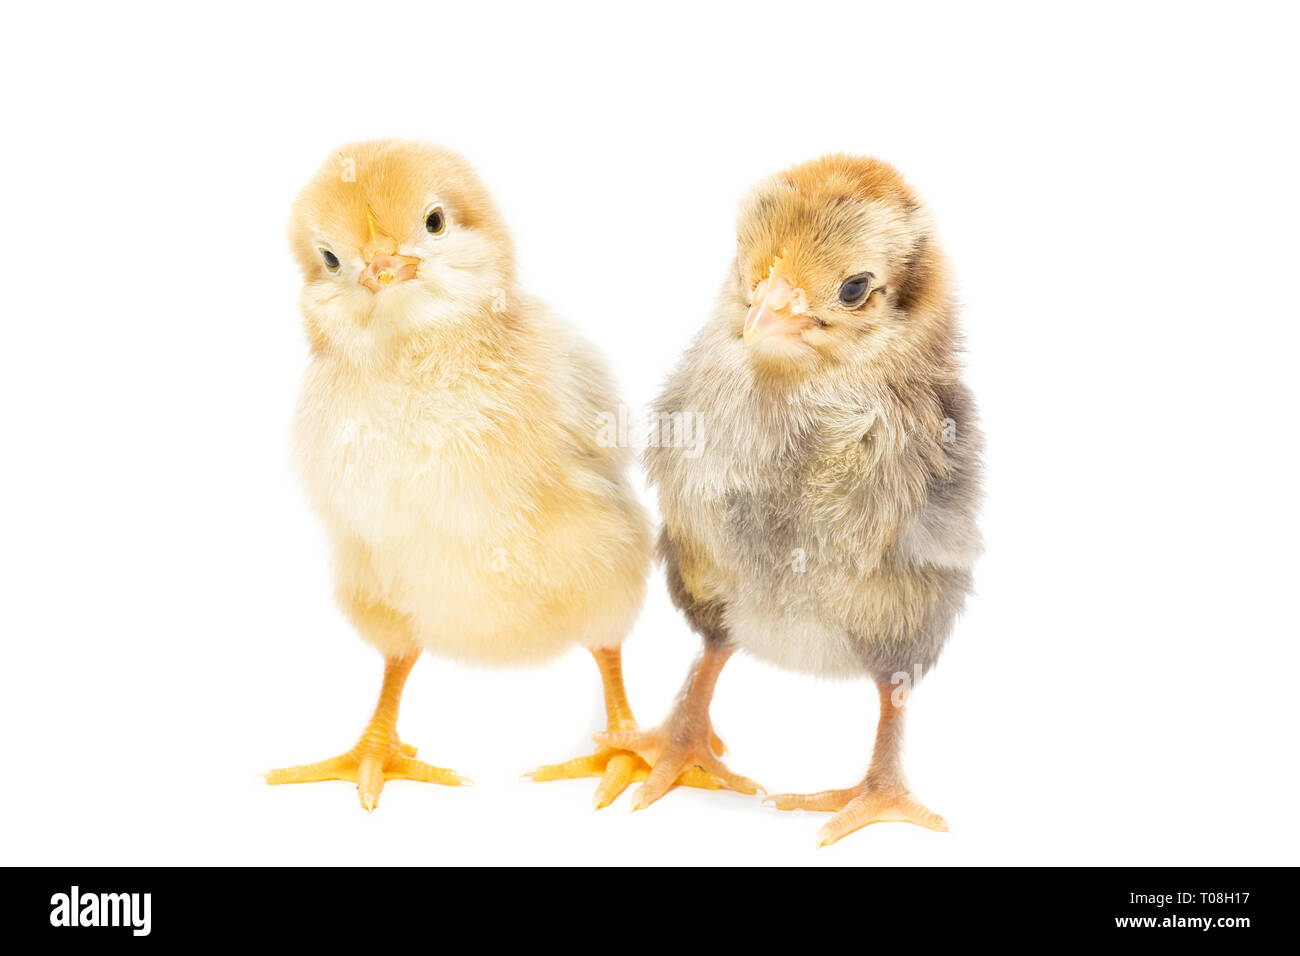 Two chickens on white background, isolation, village, summer - Stock Image